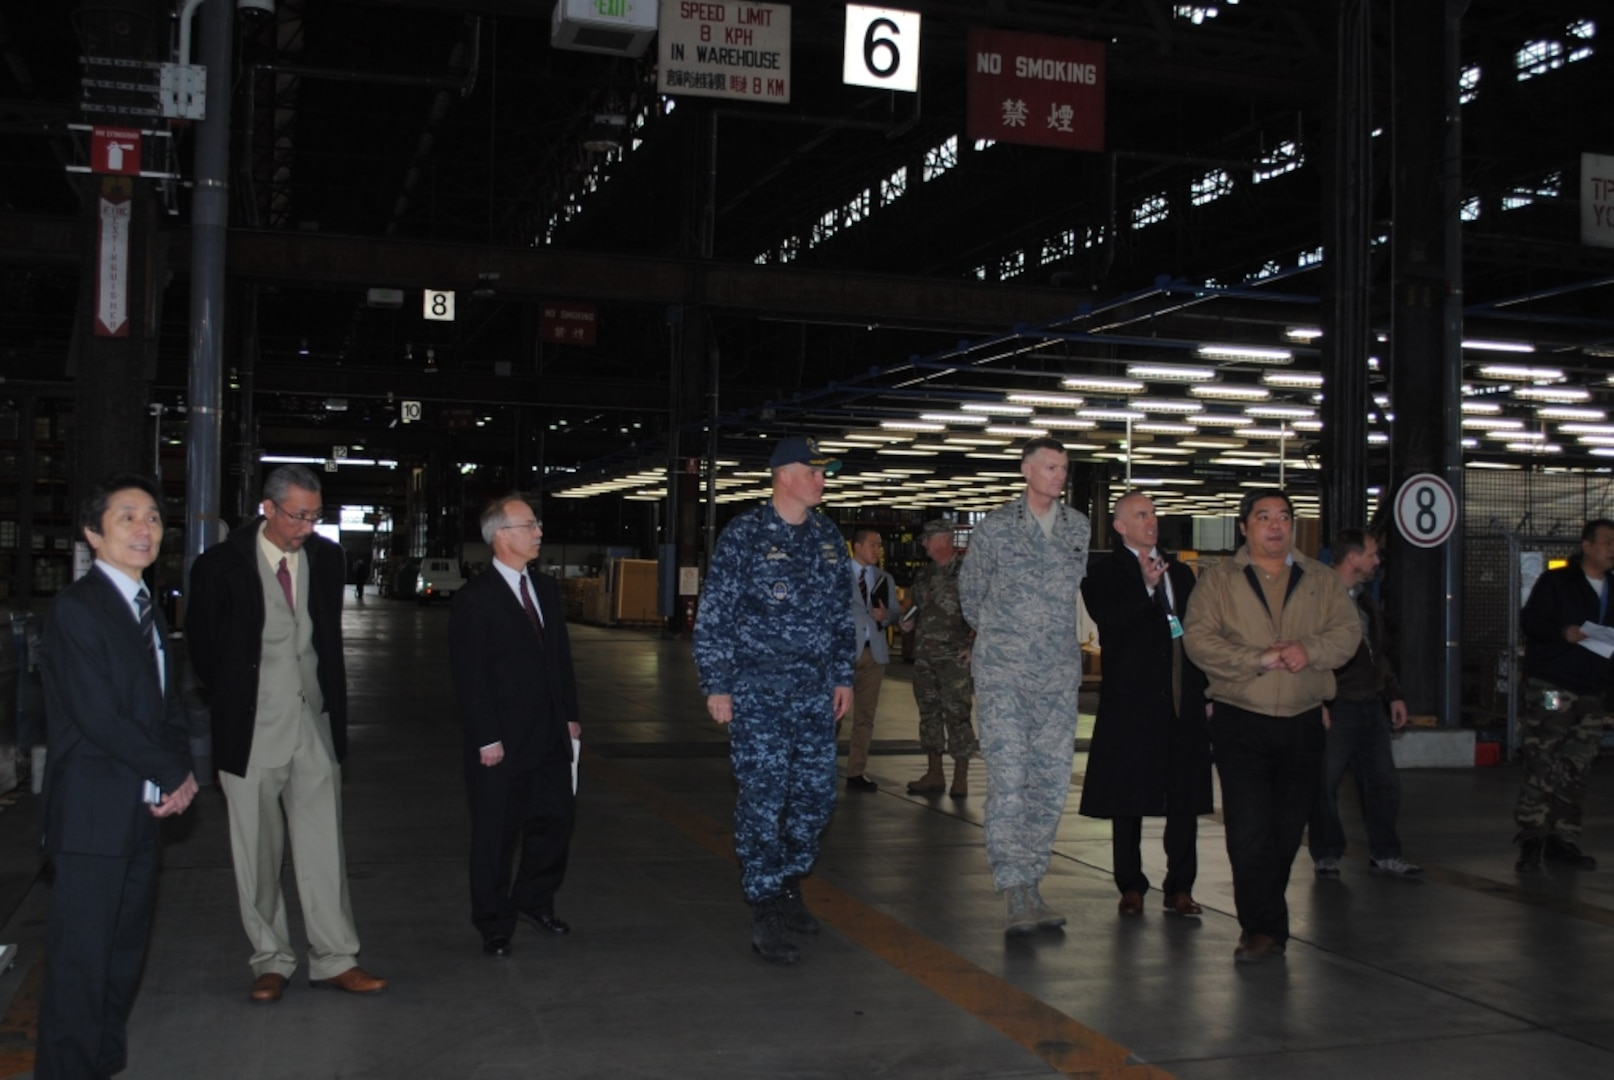 DLA Director Air Force Lt. Gen. Andy Busch joins DLA Distribution leaders on a tour of the Yokosuka facility in 2016.